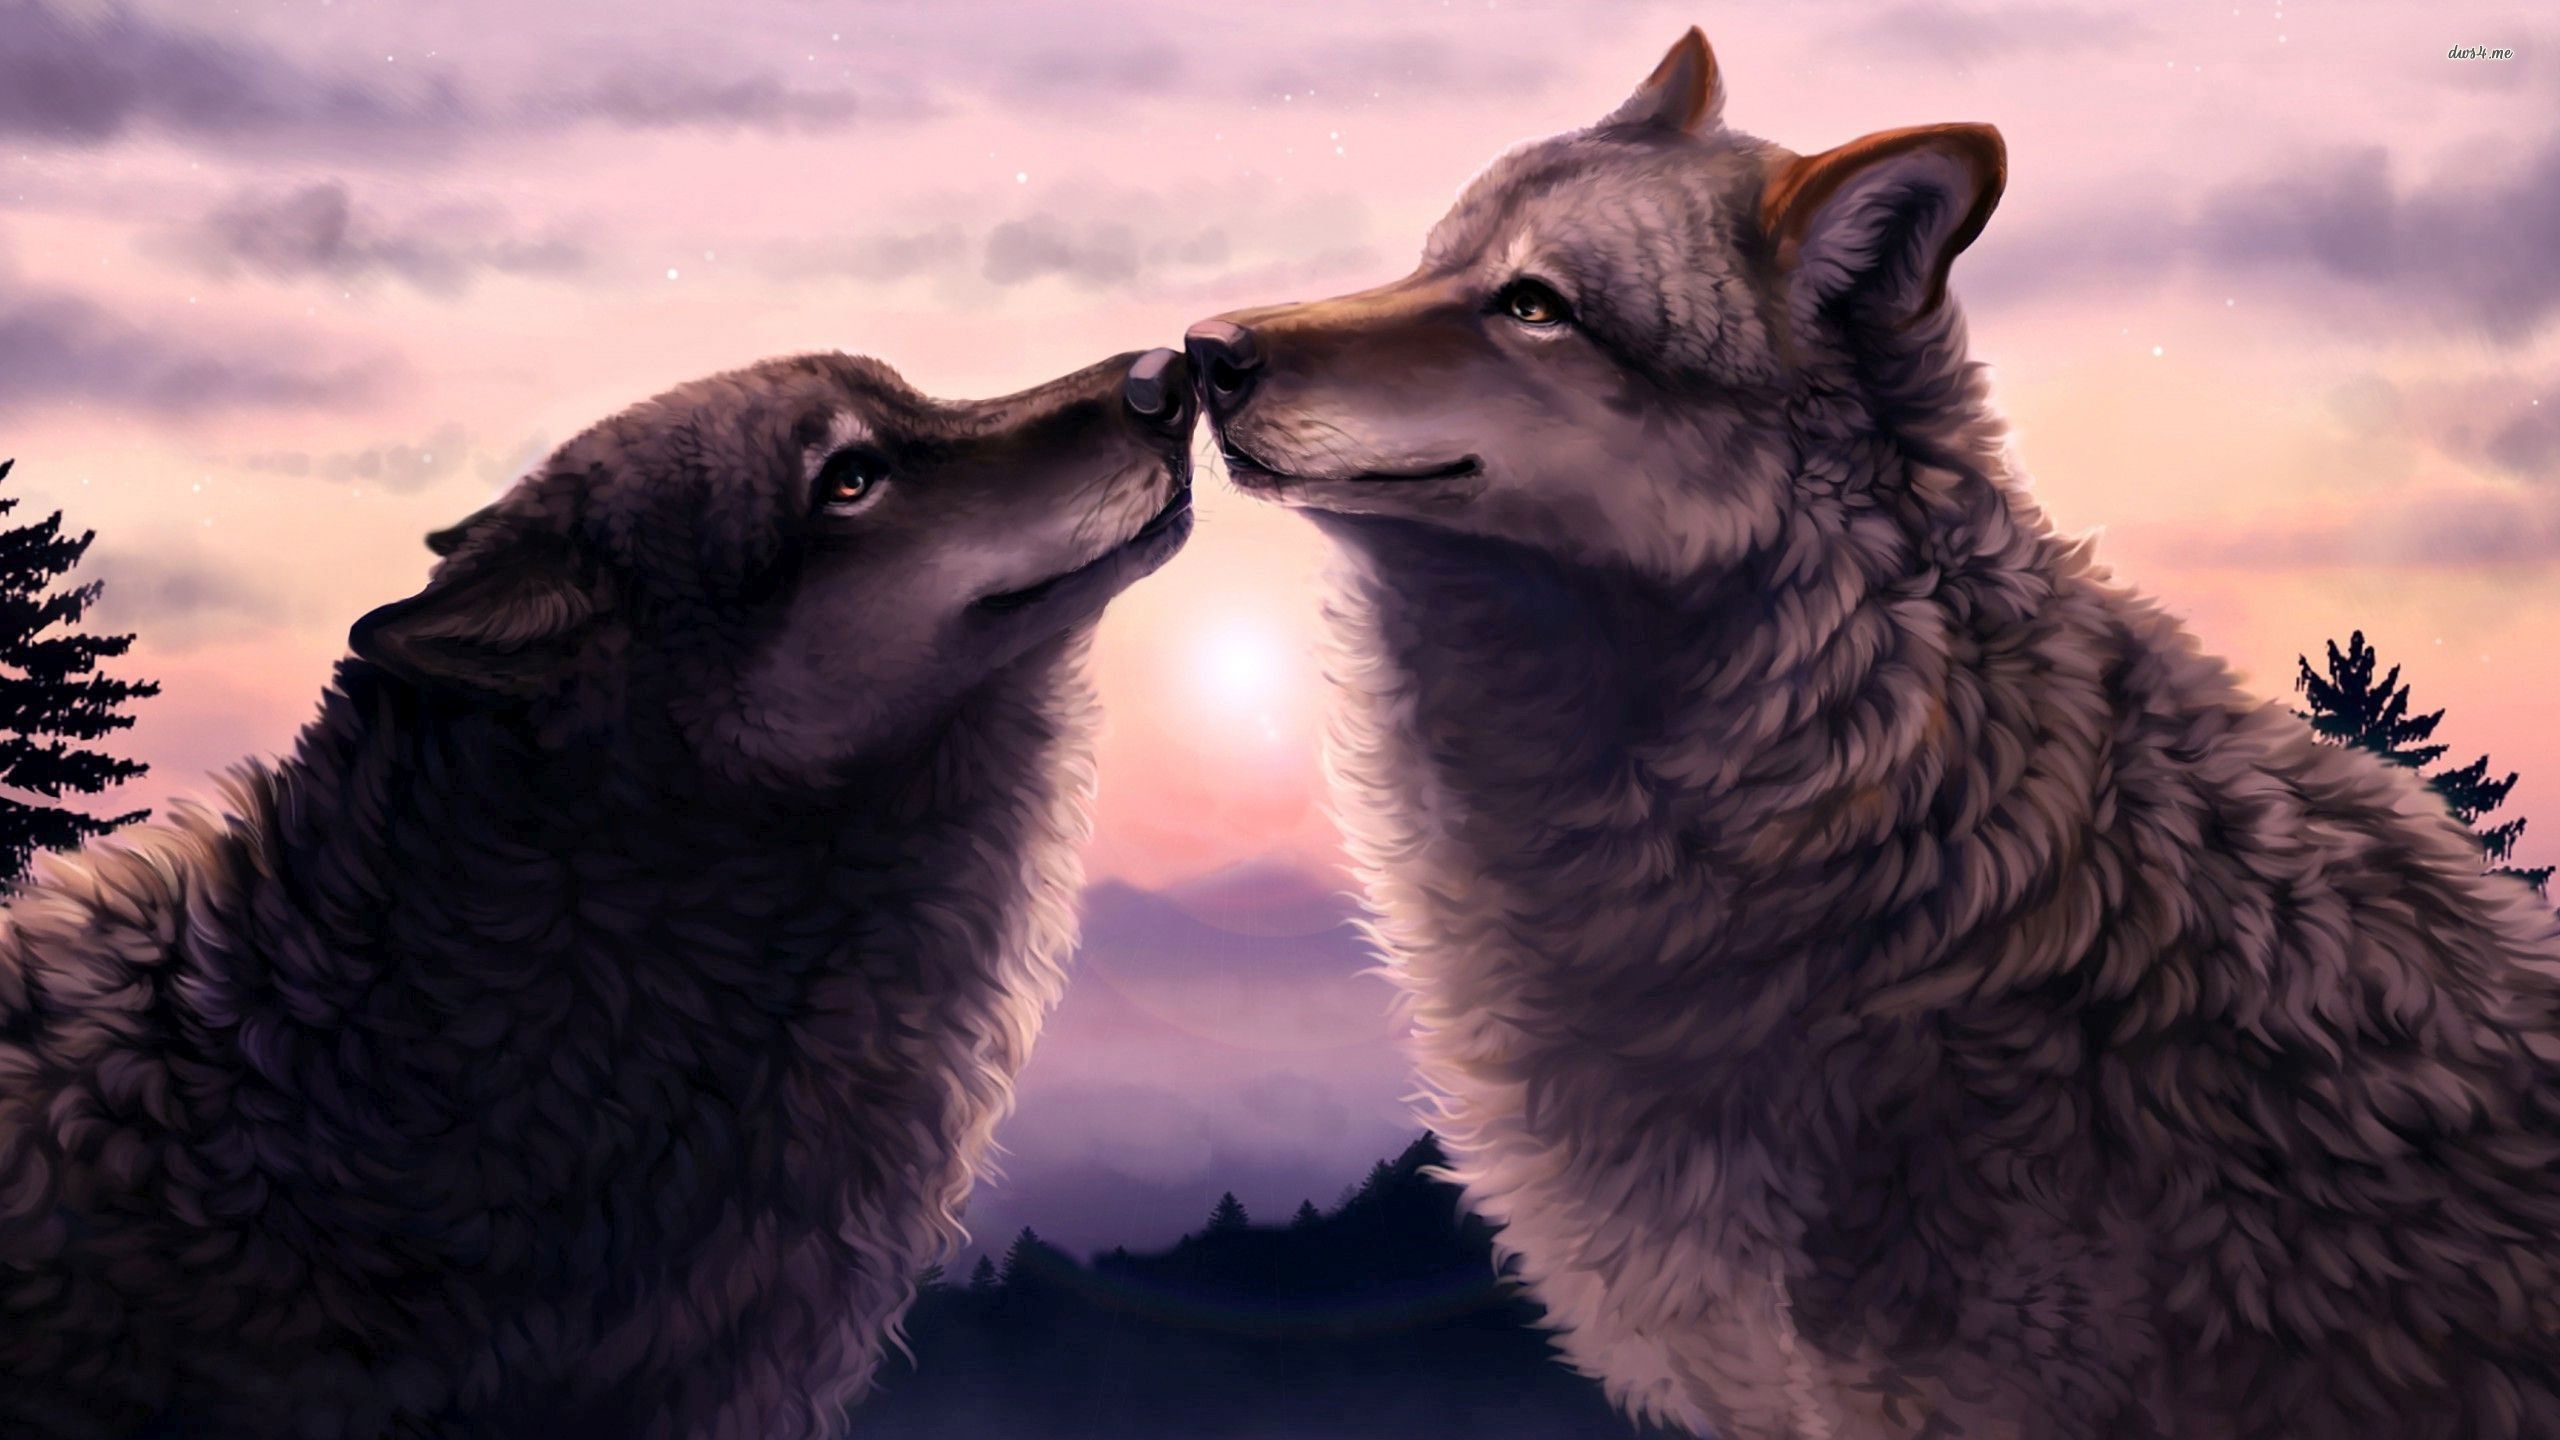 Wolves in Love Wallpapers (53+ images)